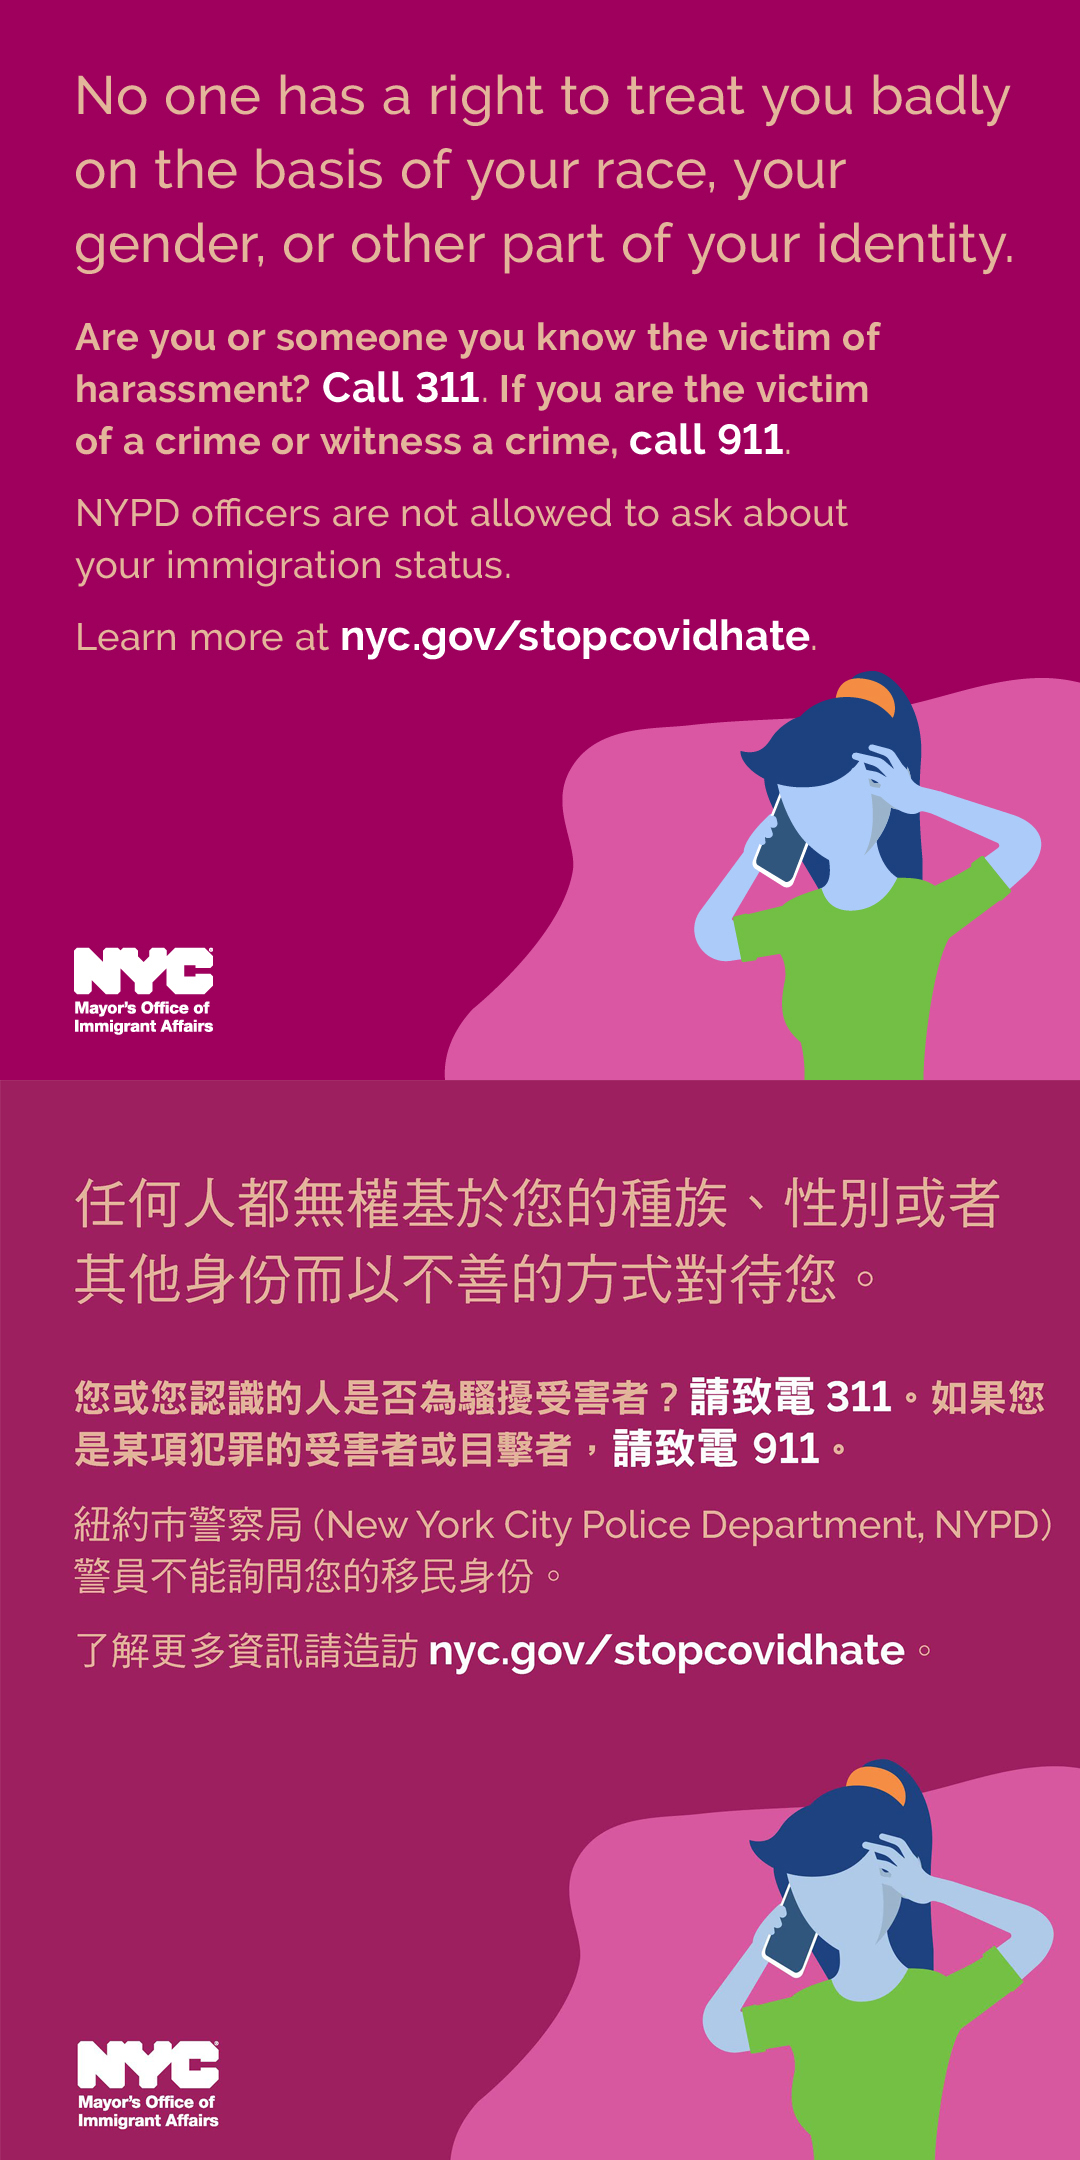 No one has the a right to treat you badly on the basis of your race your gender, or other part of your identity. Learn more at nyc.gov/stopcovidhate